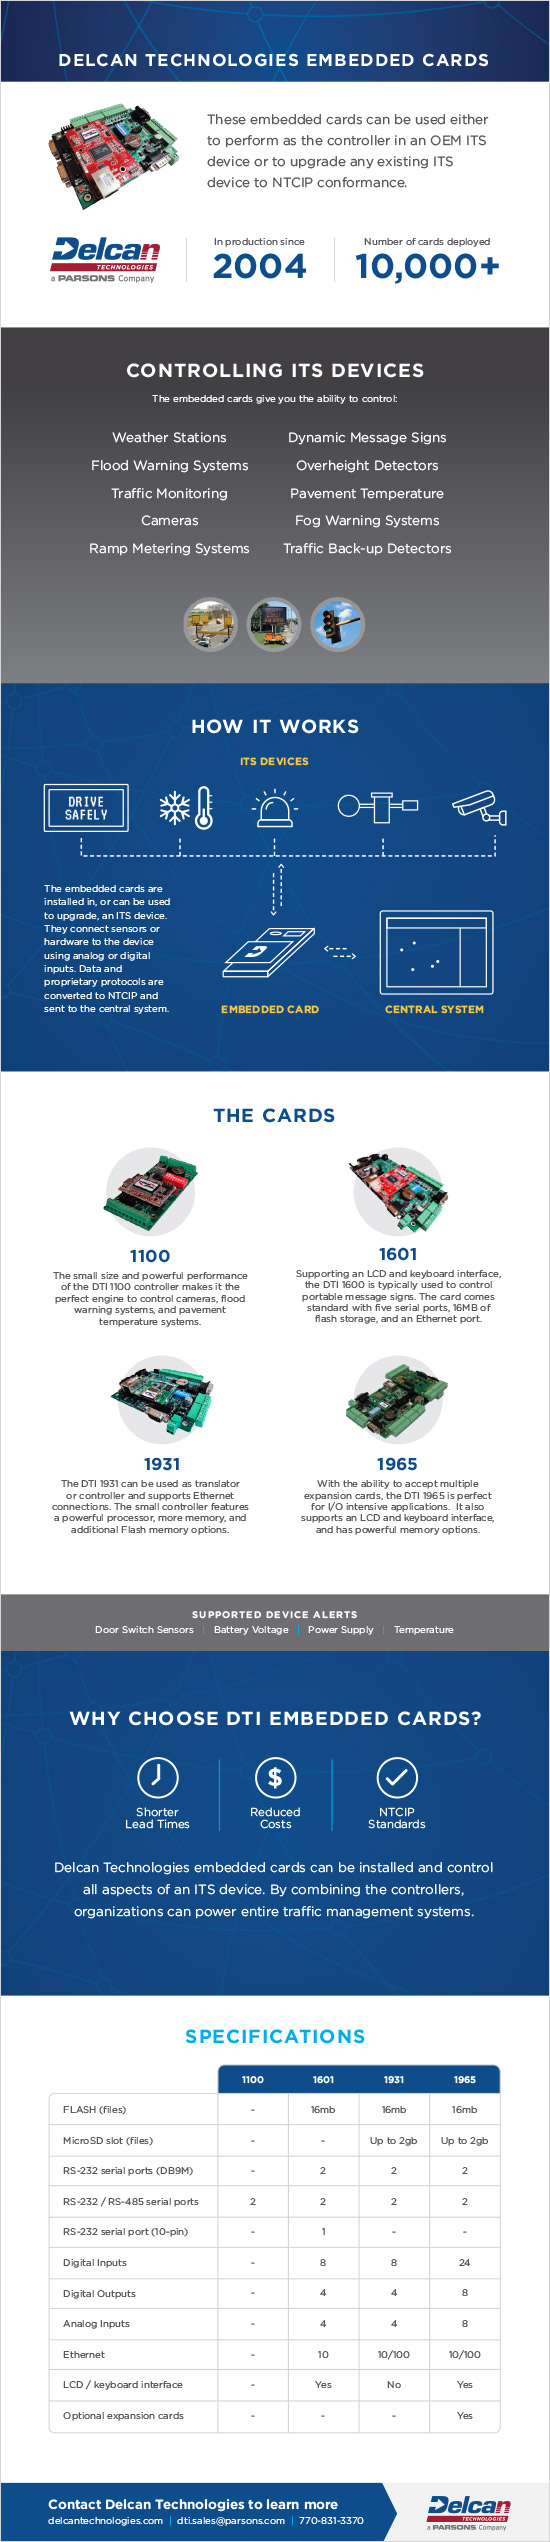 delcan-technologies-embedded-cards